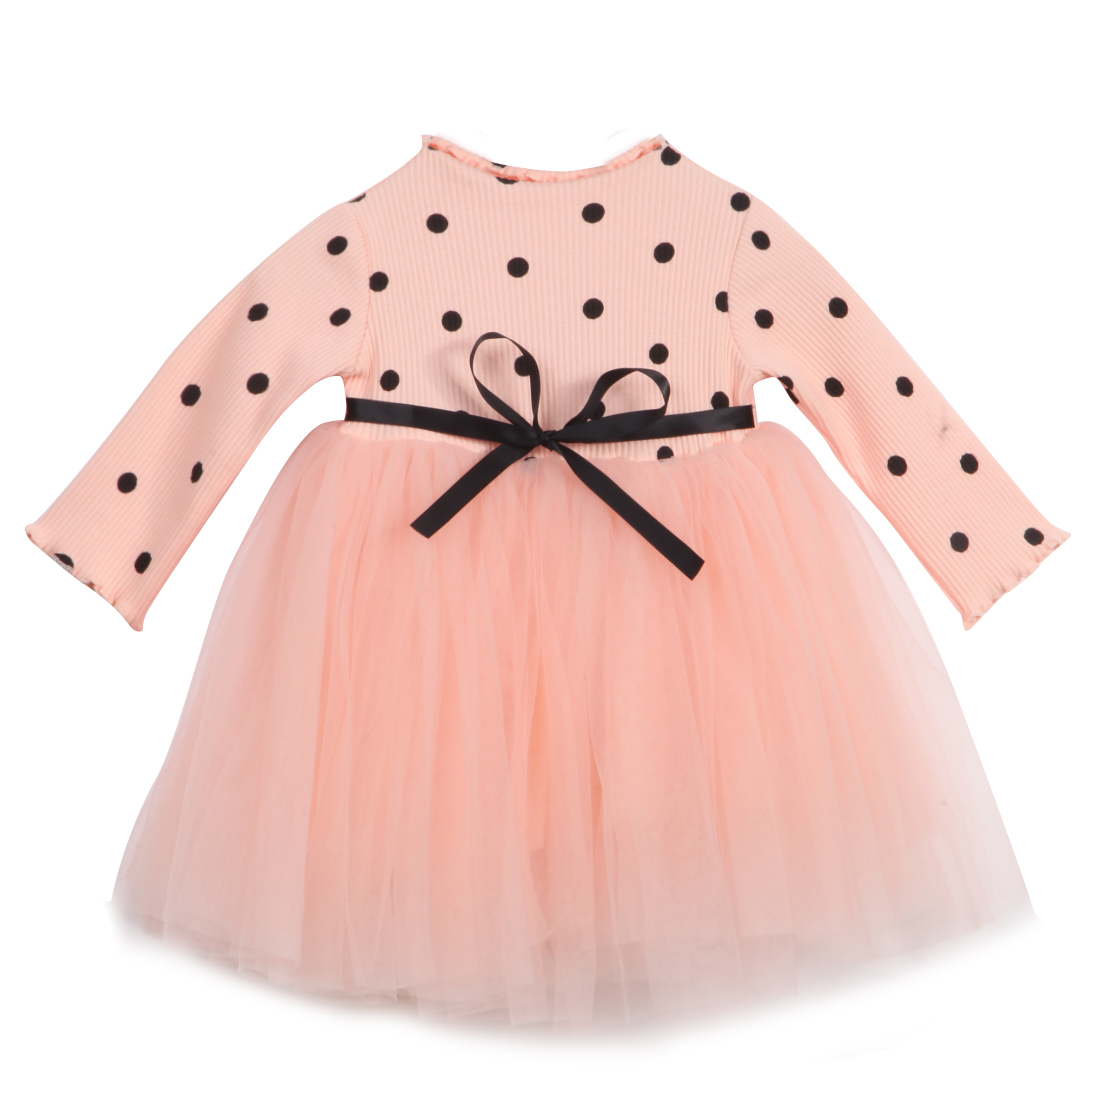 Cute Newborn Kids Baby Girl Clothing Dresses Tutu Cute Ball Summer Polka Dot Lace Tutu Dress Girls Clothes 40pcs lot new korea lovely animal style diy multifunction paper sticker decoration seal label